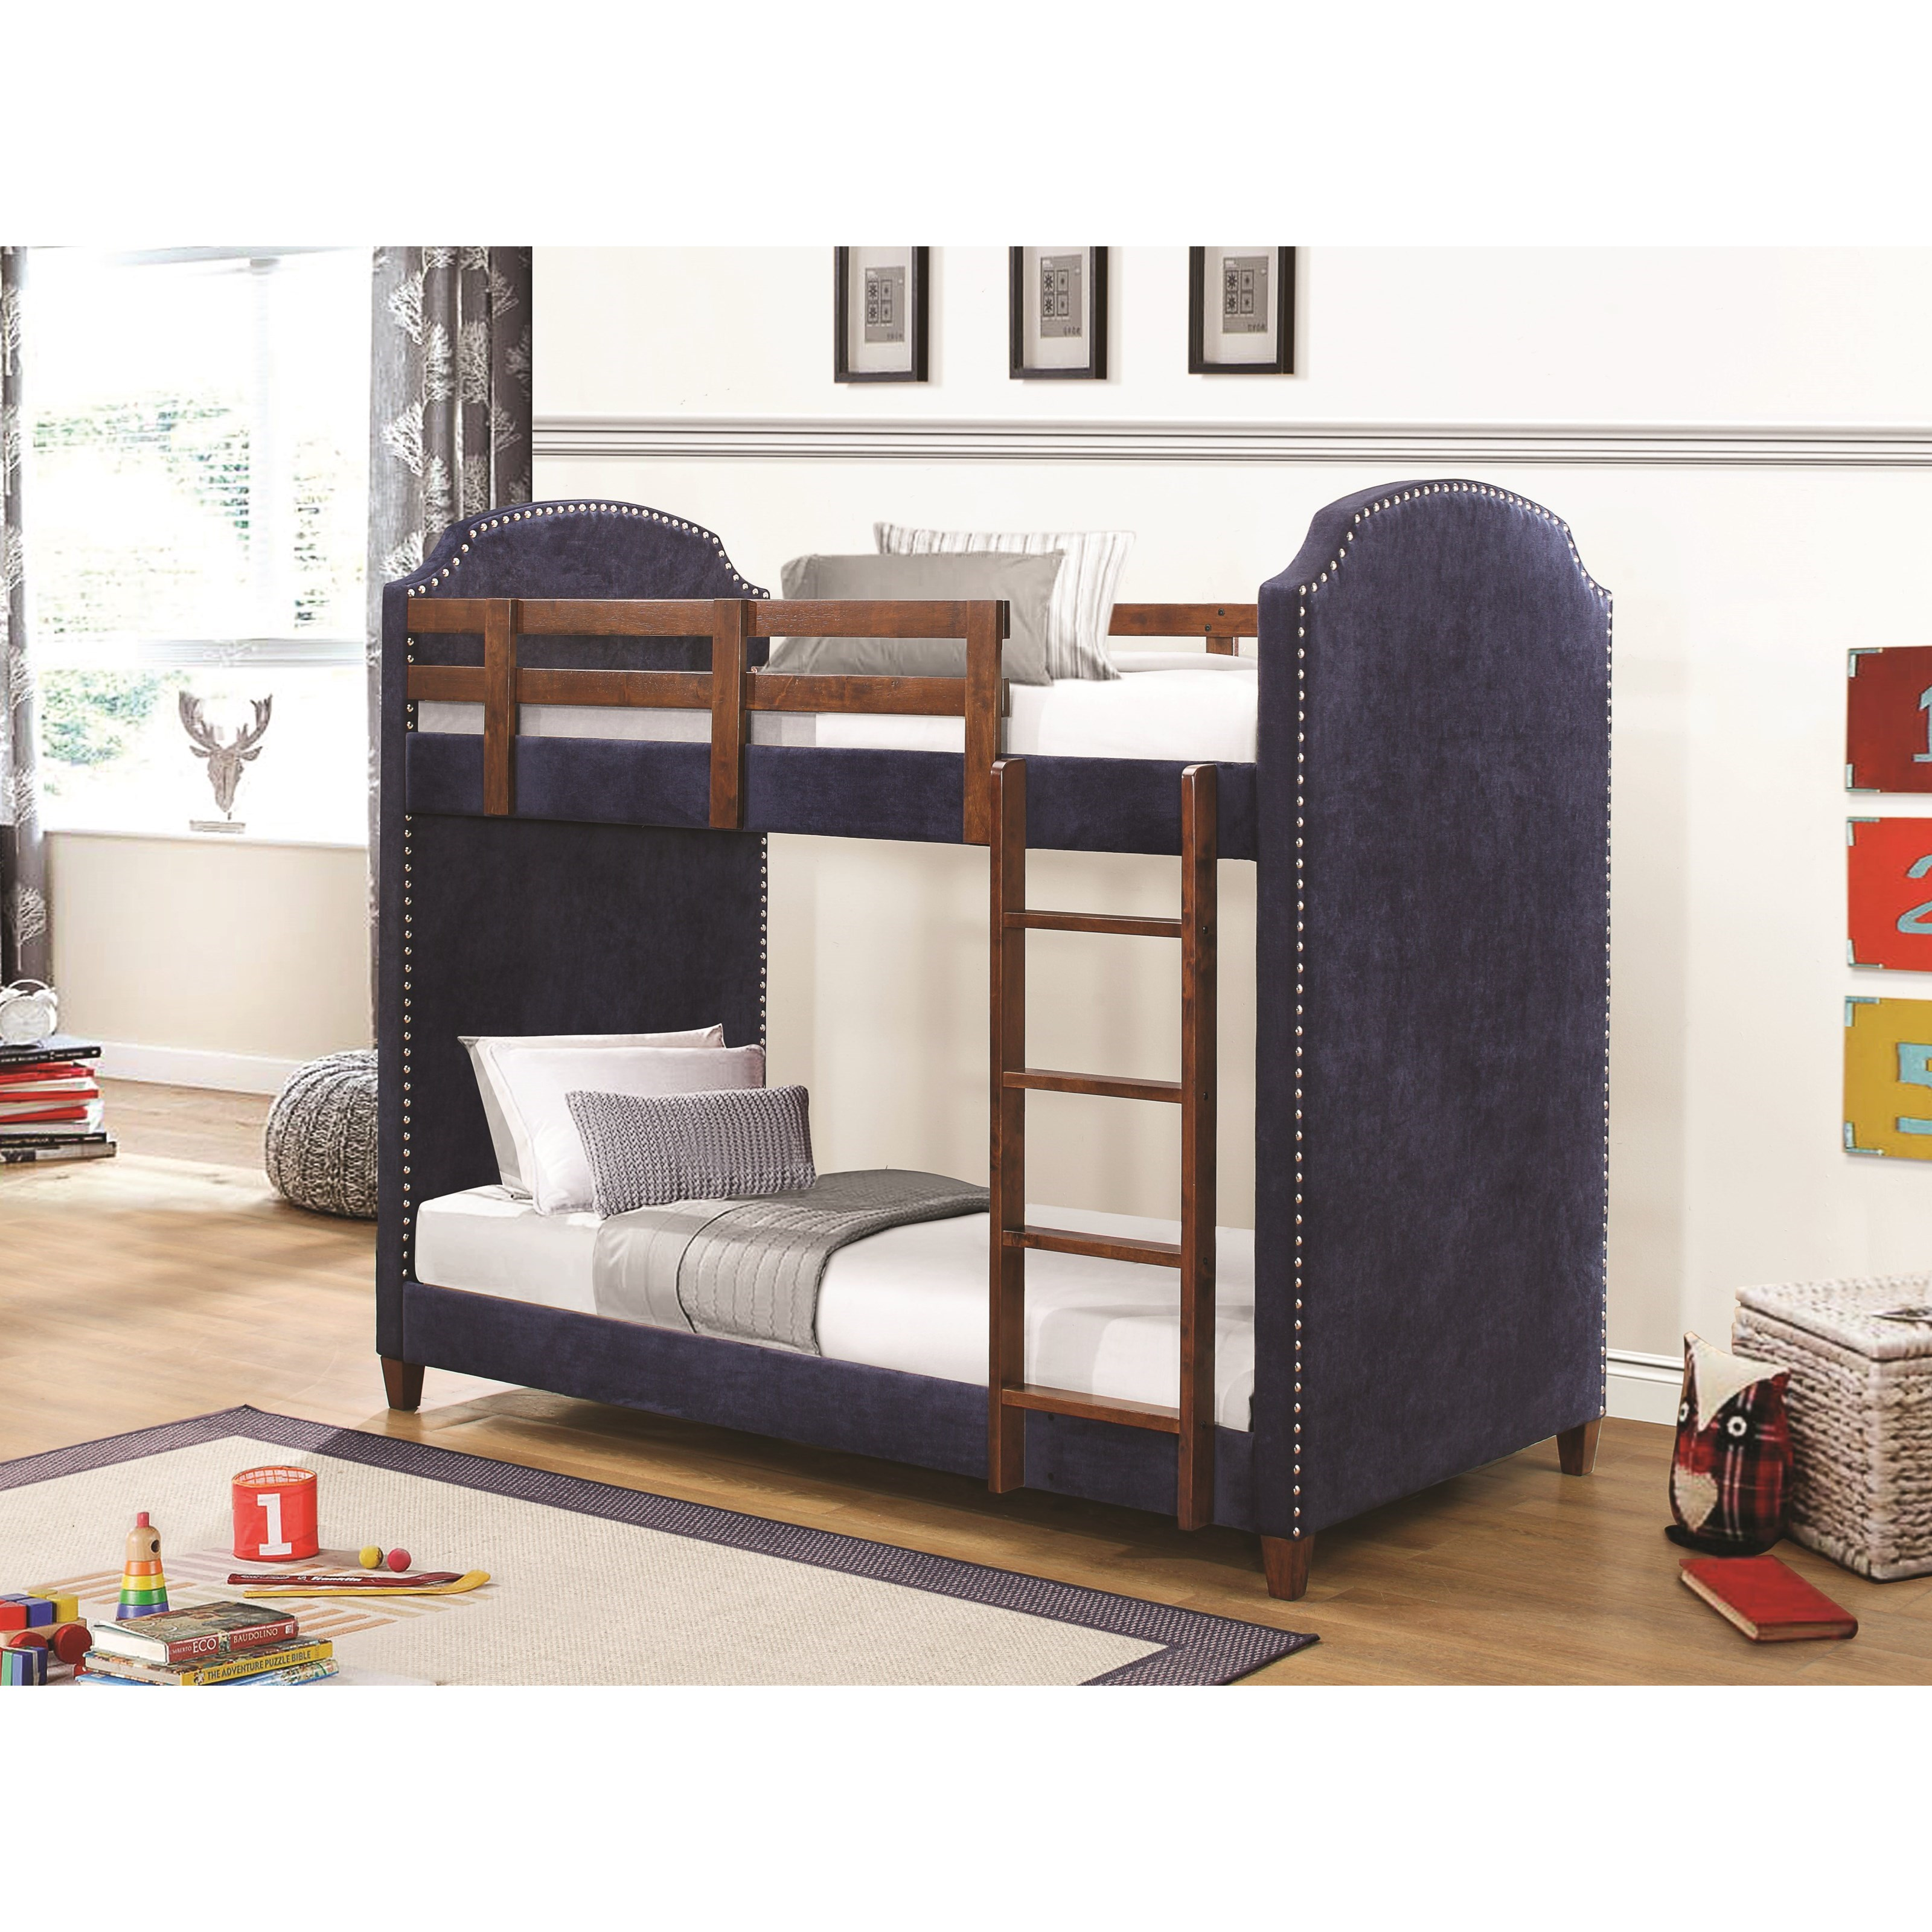 Coaster Bunks Bunk Bed - Item Number: 460380